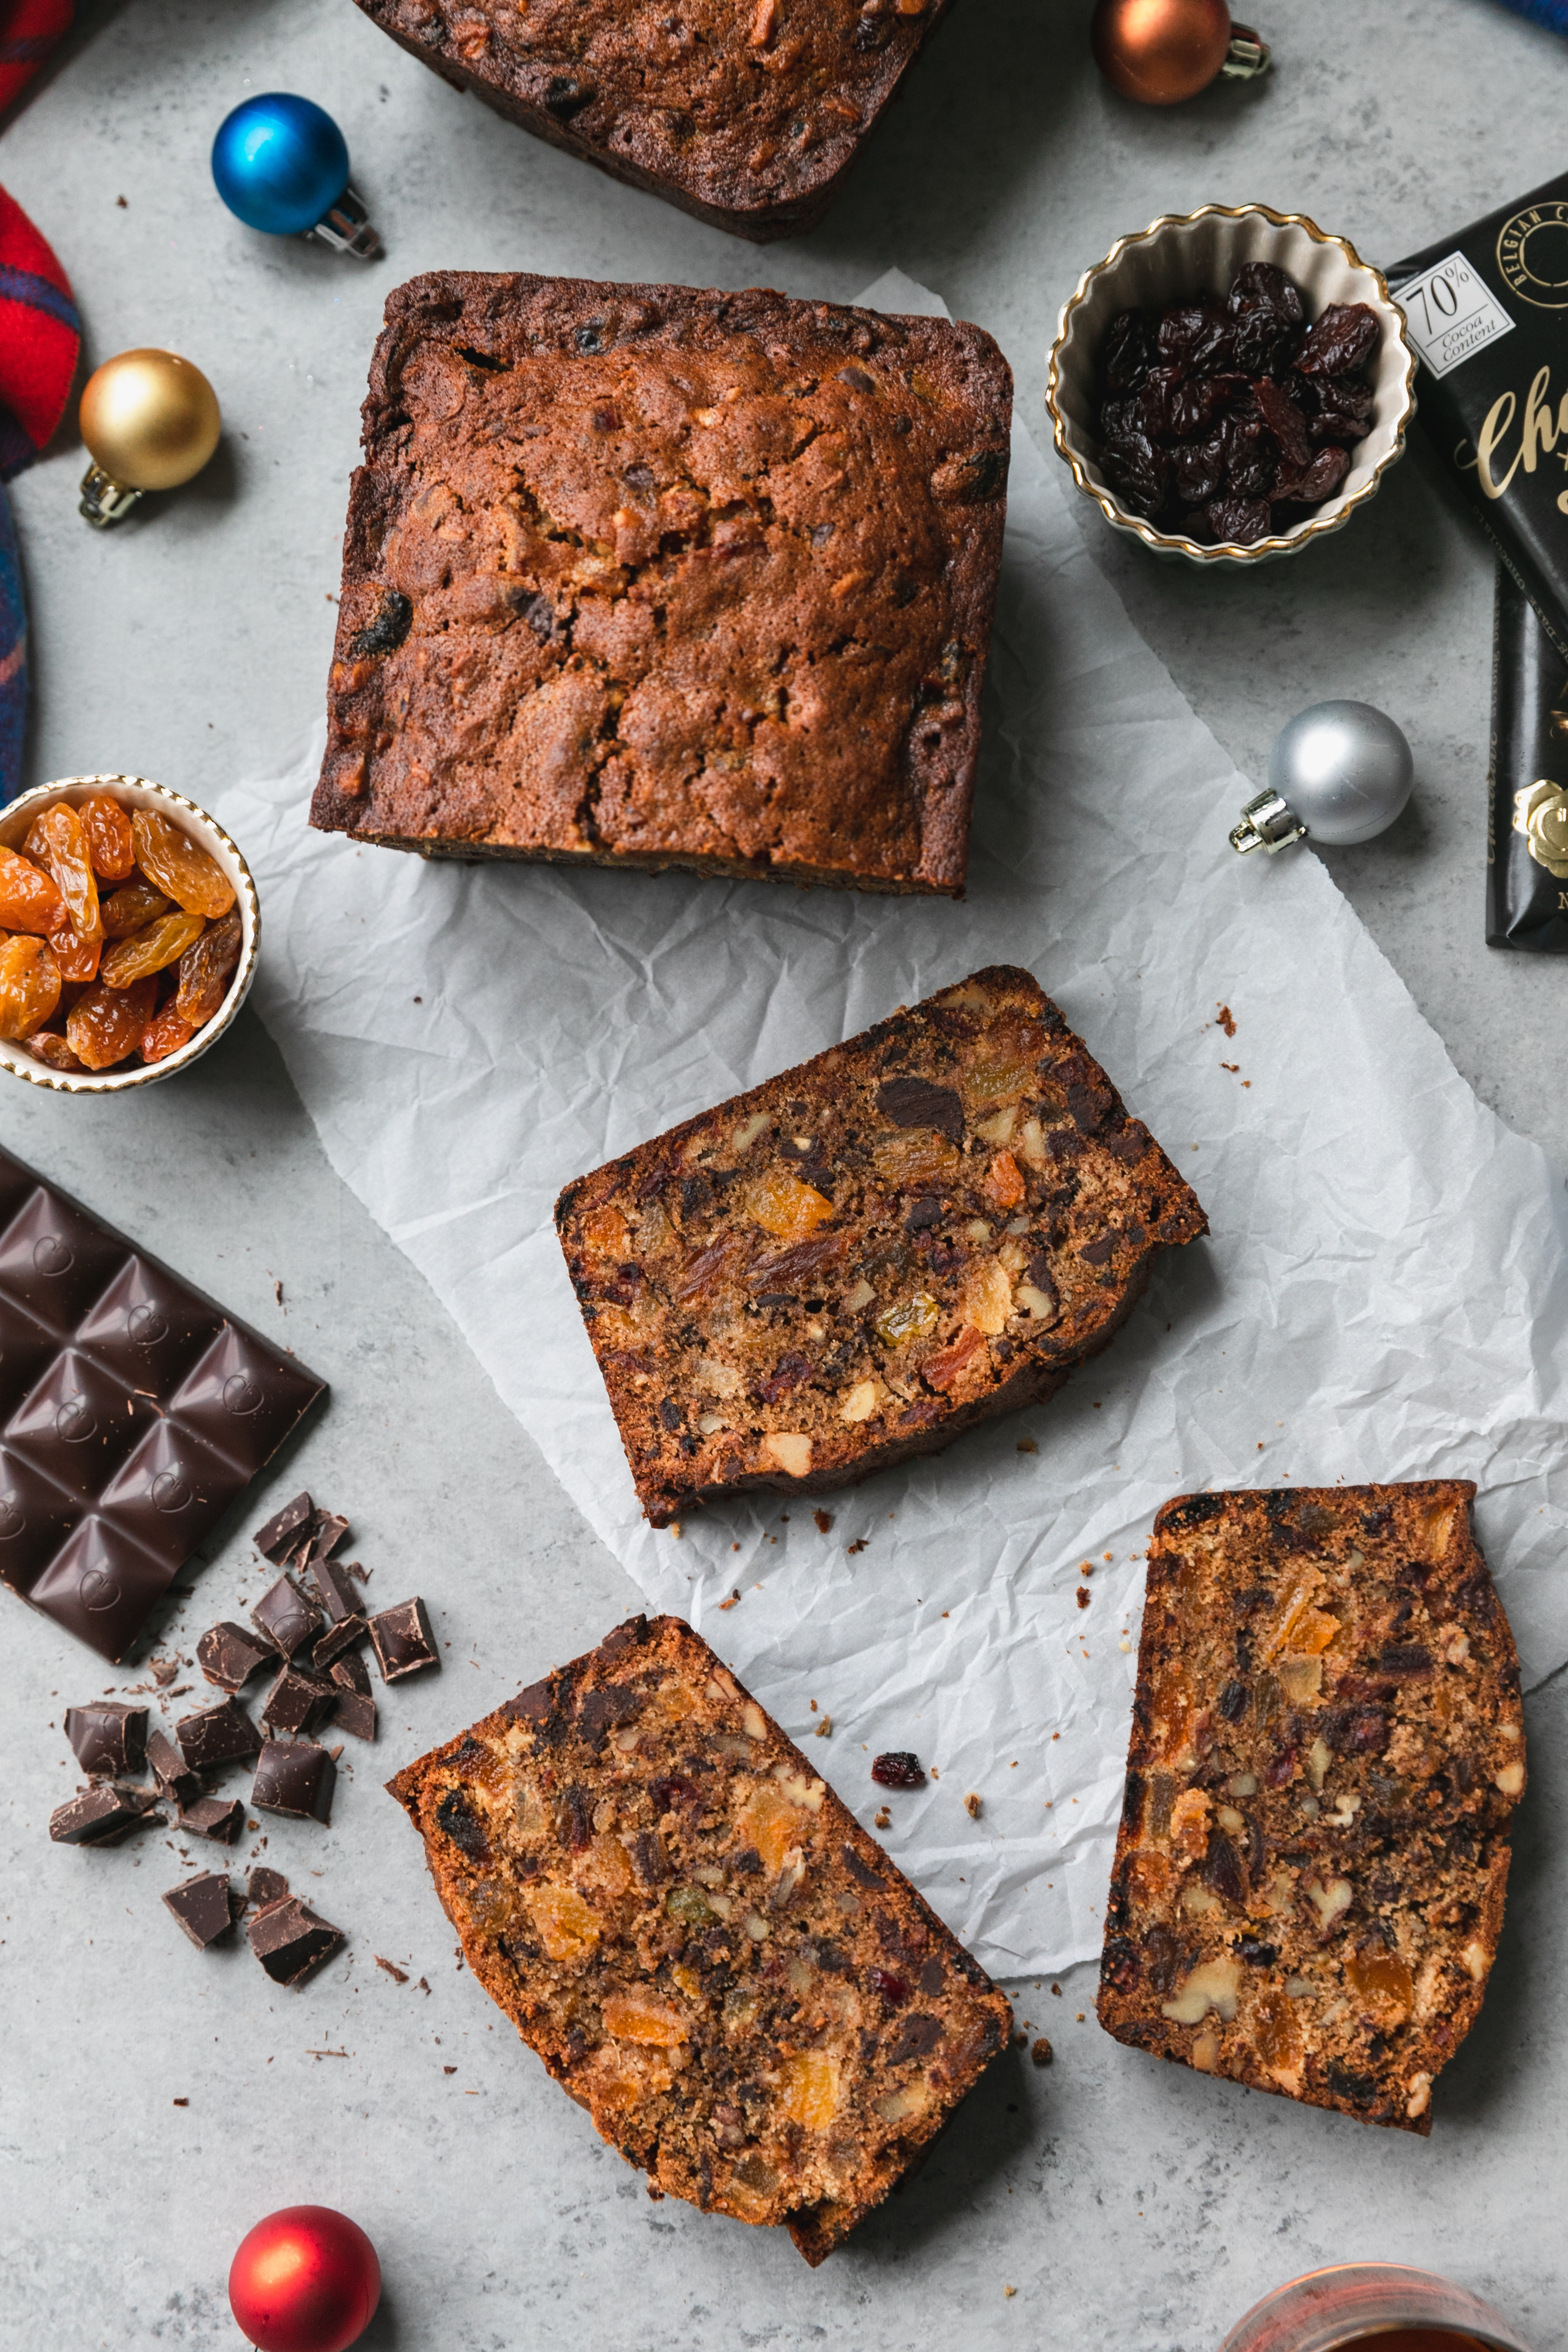 Overhead shot of a fruitcake loaf and fruitcake slices with chopped dark chocolate and ornaments scattered around